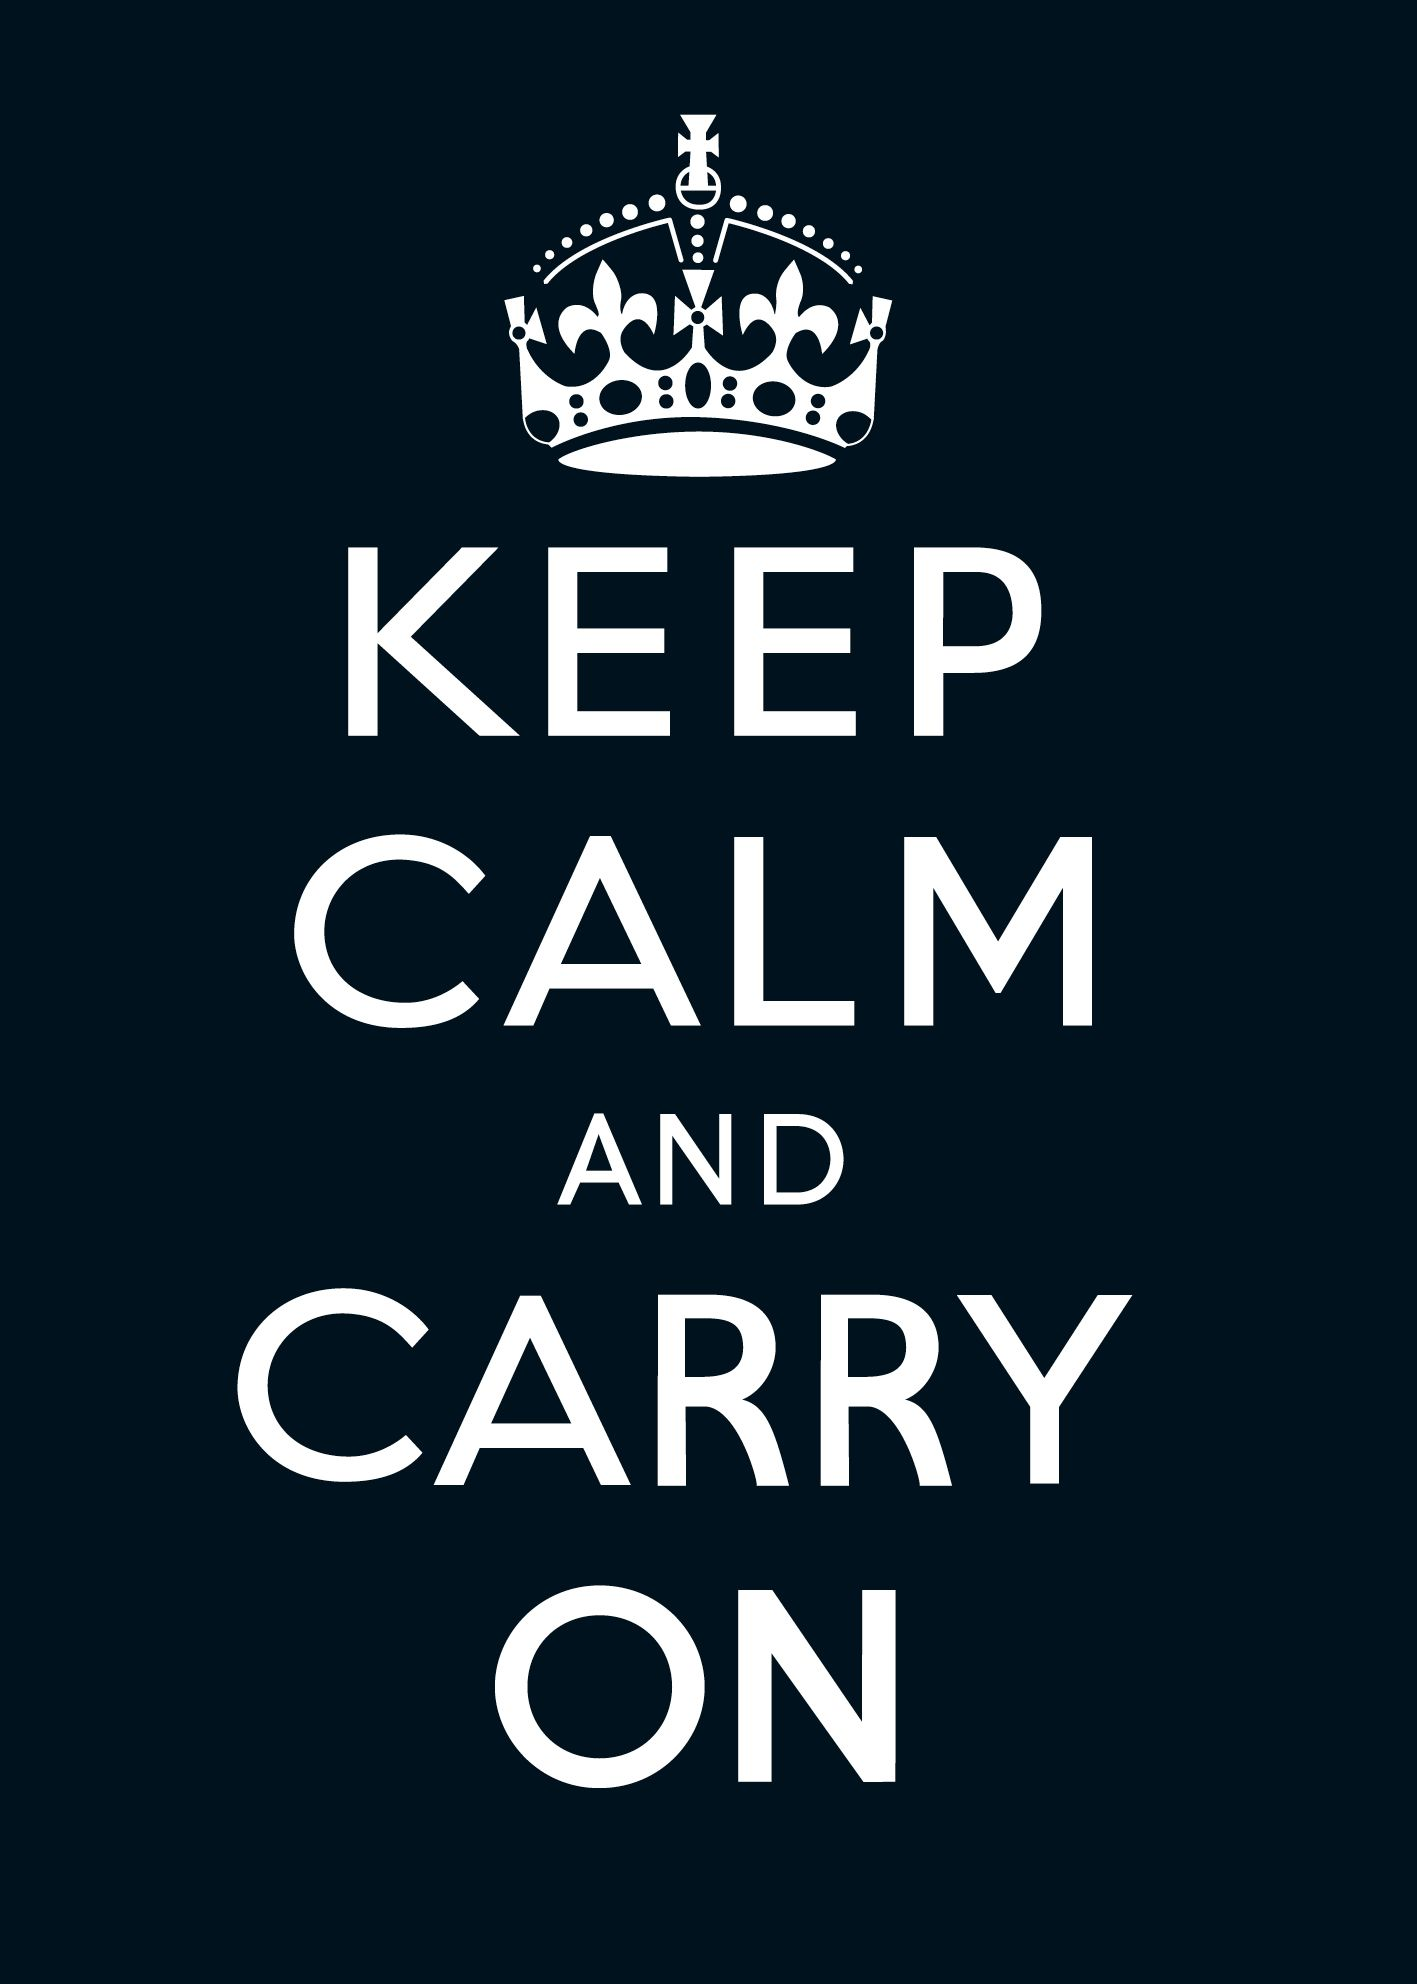 Keep Calm and Carry On was a propaganda poster produced by ...